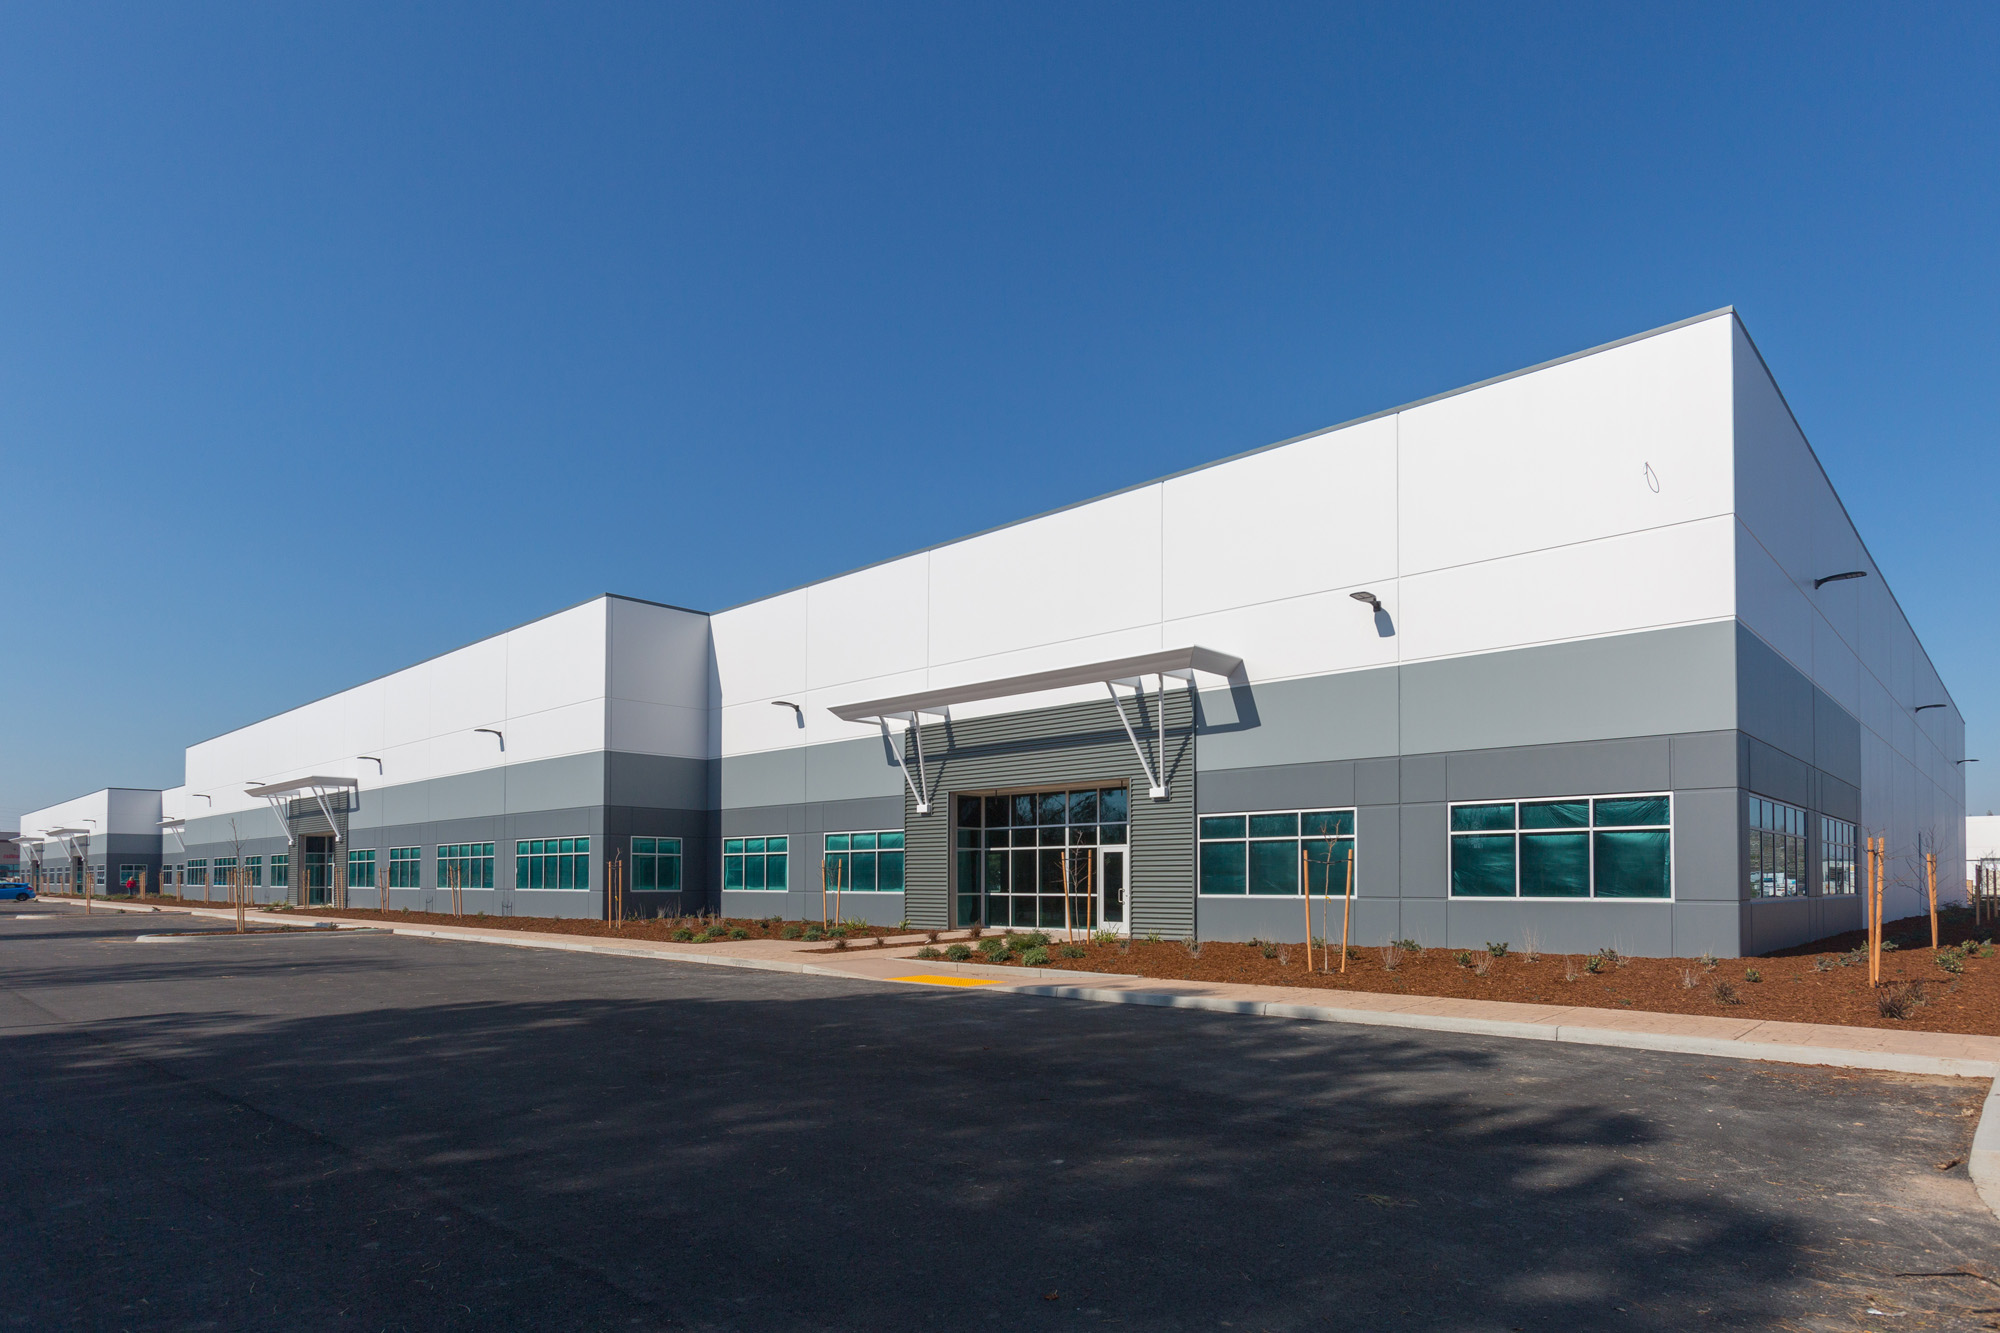 Exterior photo of front of building at The latest addition to Riverside Commerce Center, a 75 acre, master-planned business park in West Sacramento at Stillwater Rd